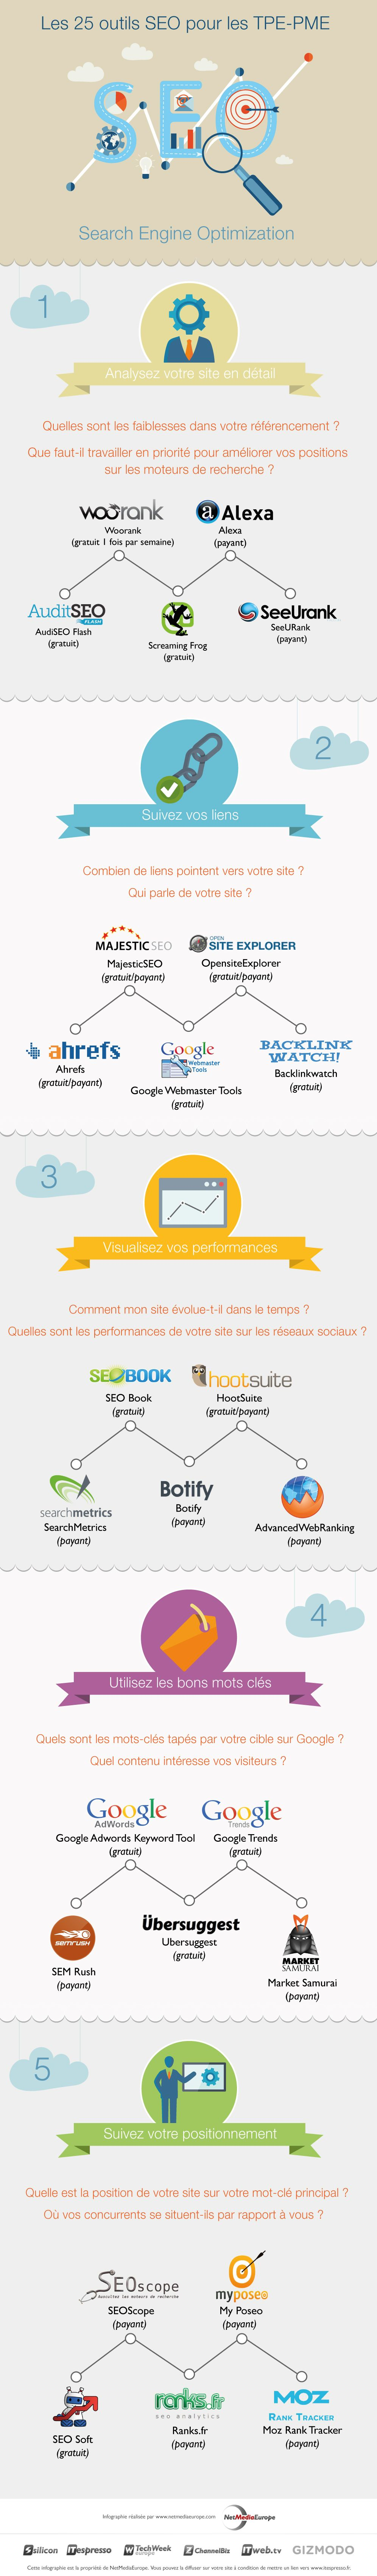 infographie-25-outils-seo